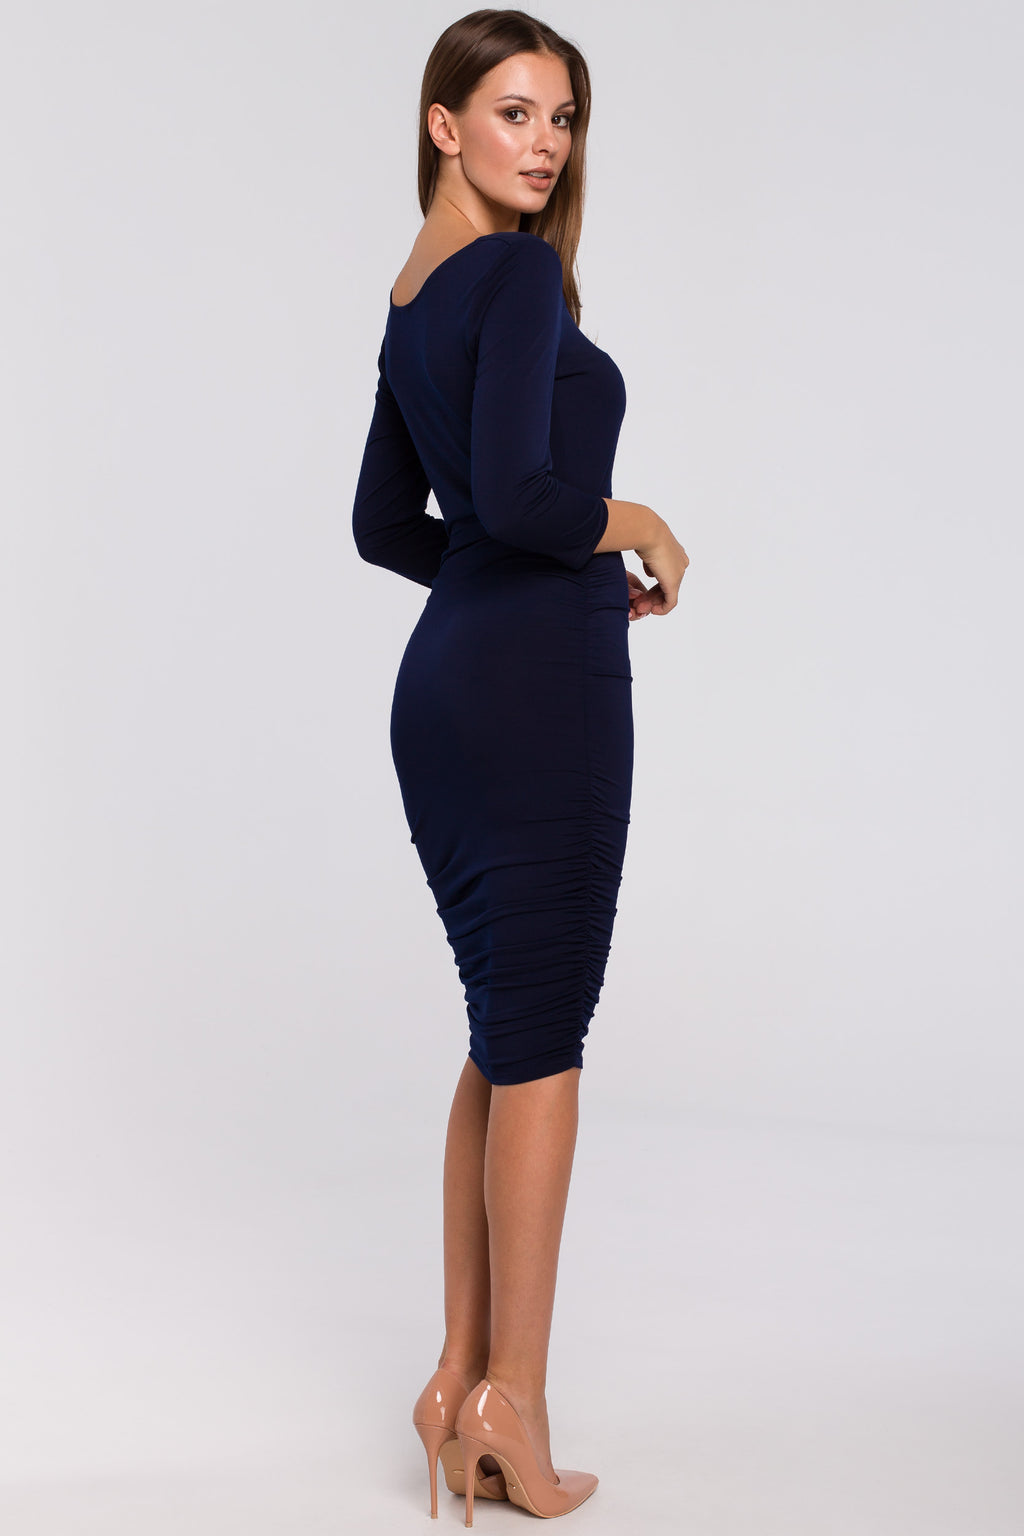 Navy Blue Midi Dress With Ruched Detailing - So Chic Boutique